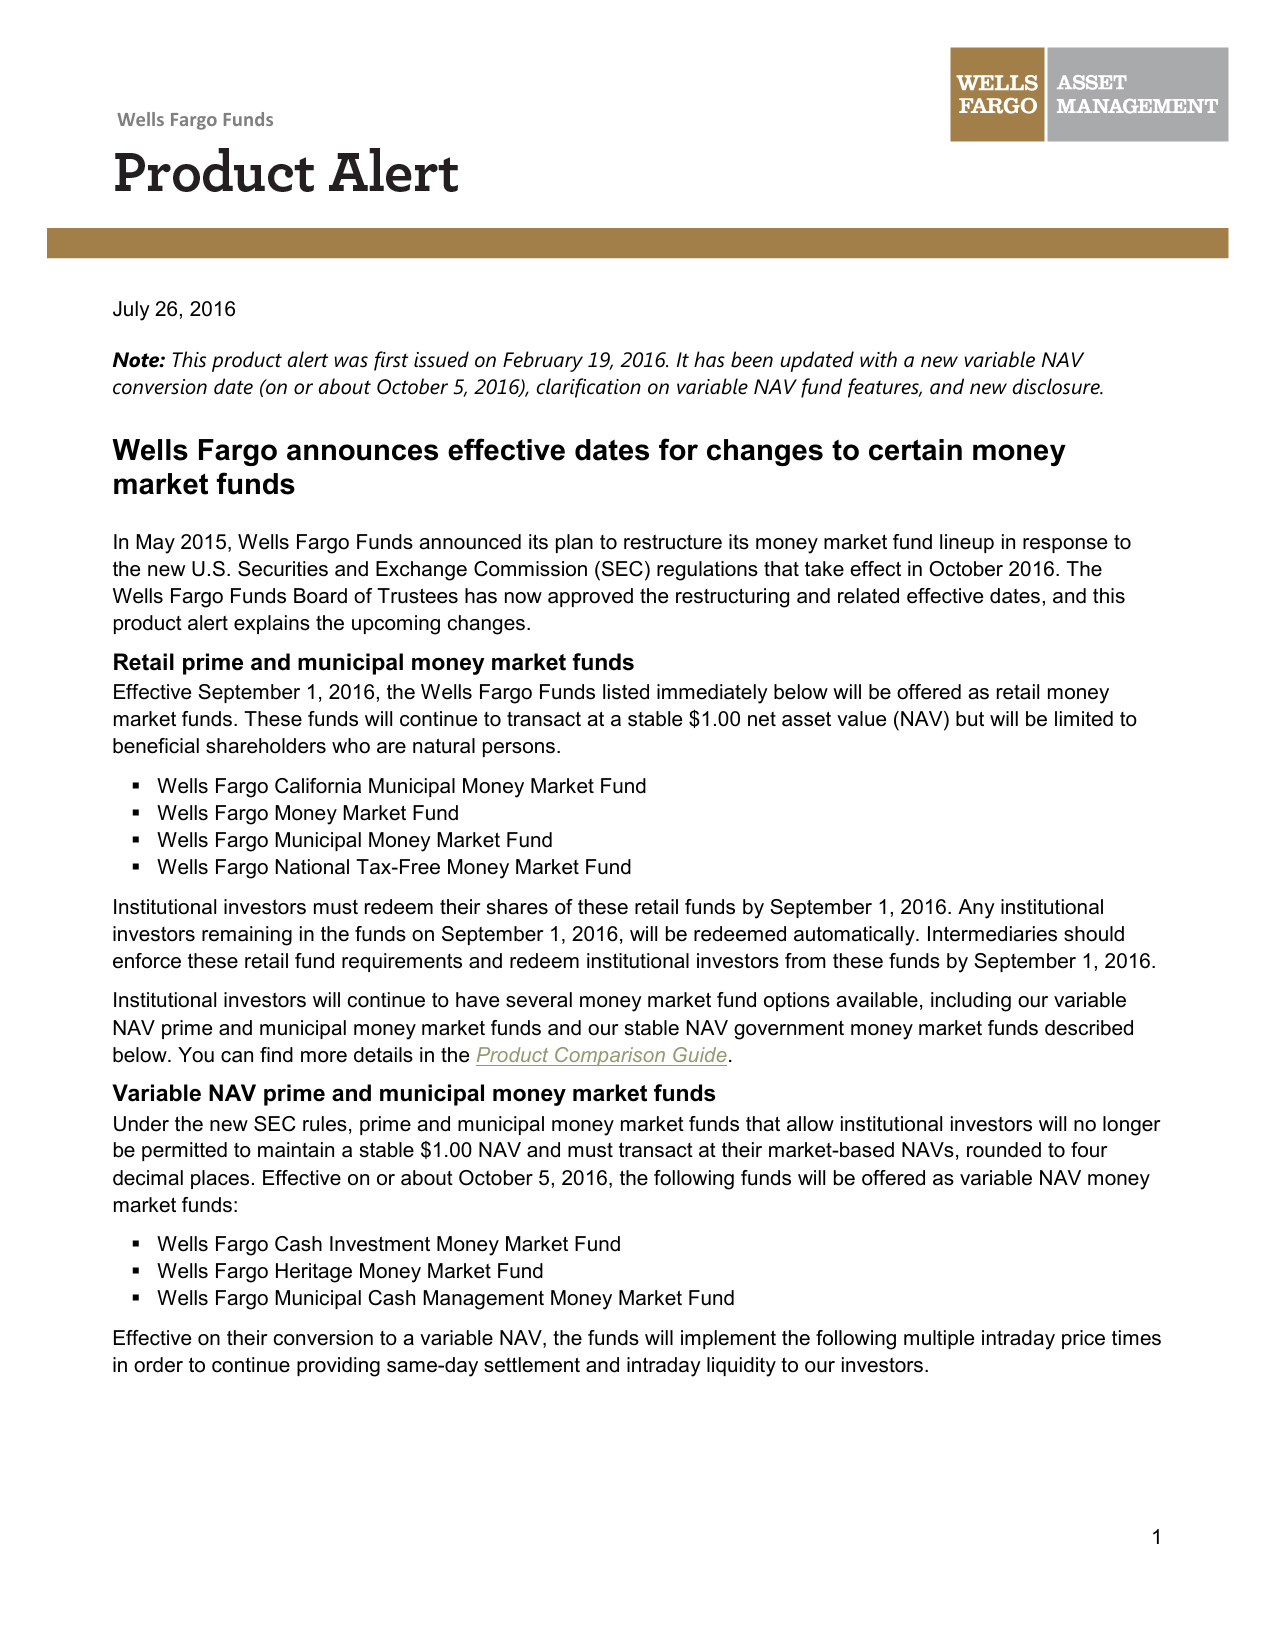 Wells Fargo announces effective dates for changes to certain